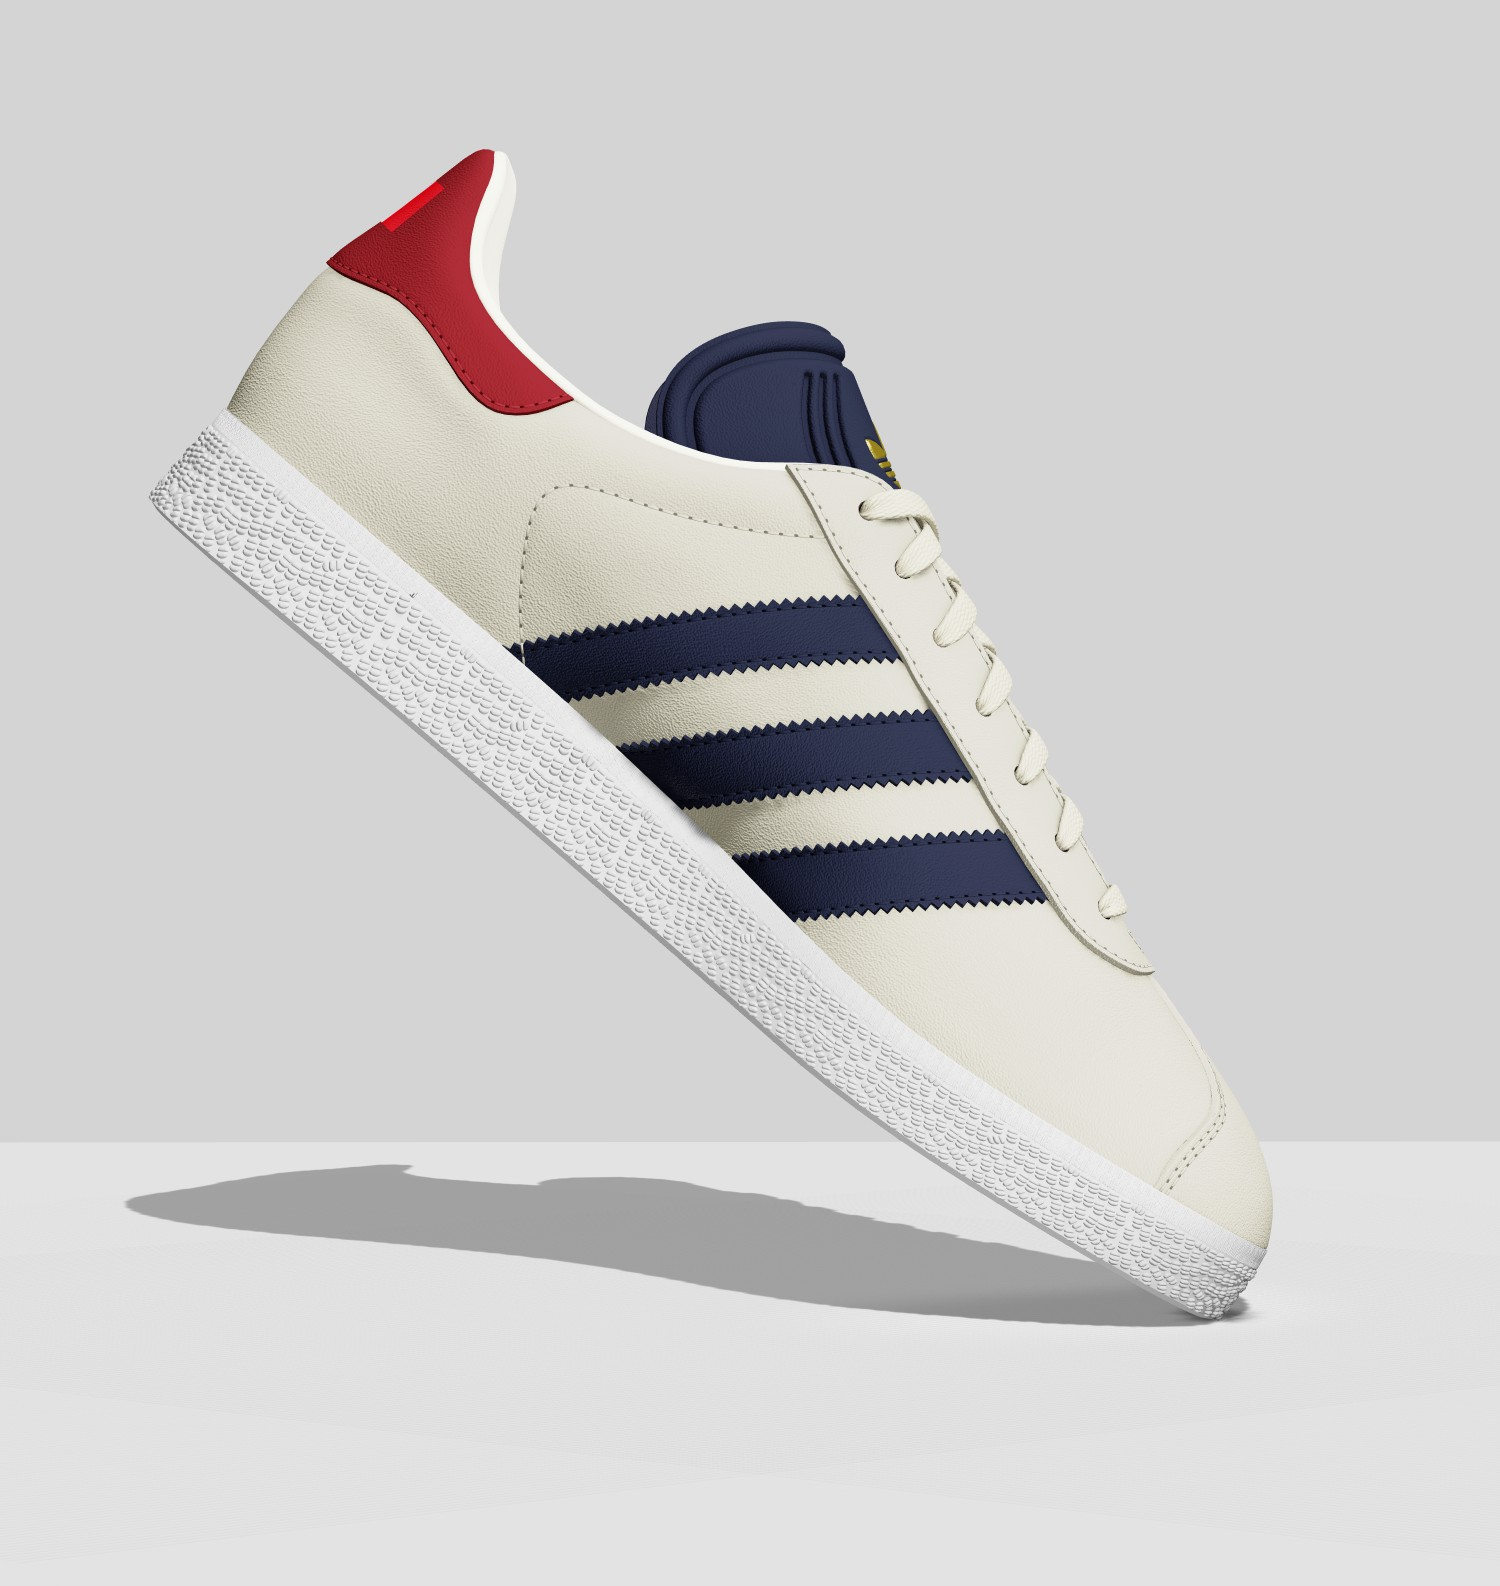 outlet store 90e33 a454d Blog Mode Skor World Adidas Frankrike Gazelle Mi Fotboll Pack Z4wq4C